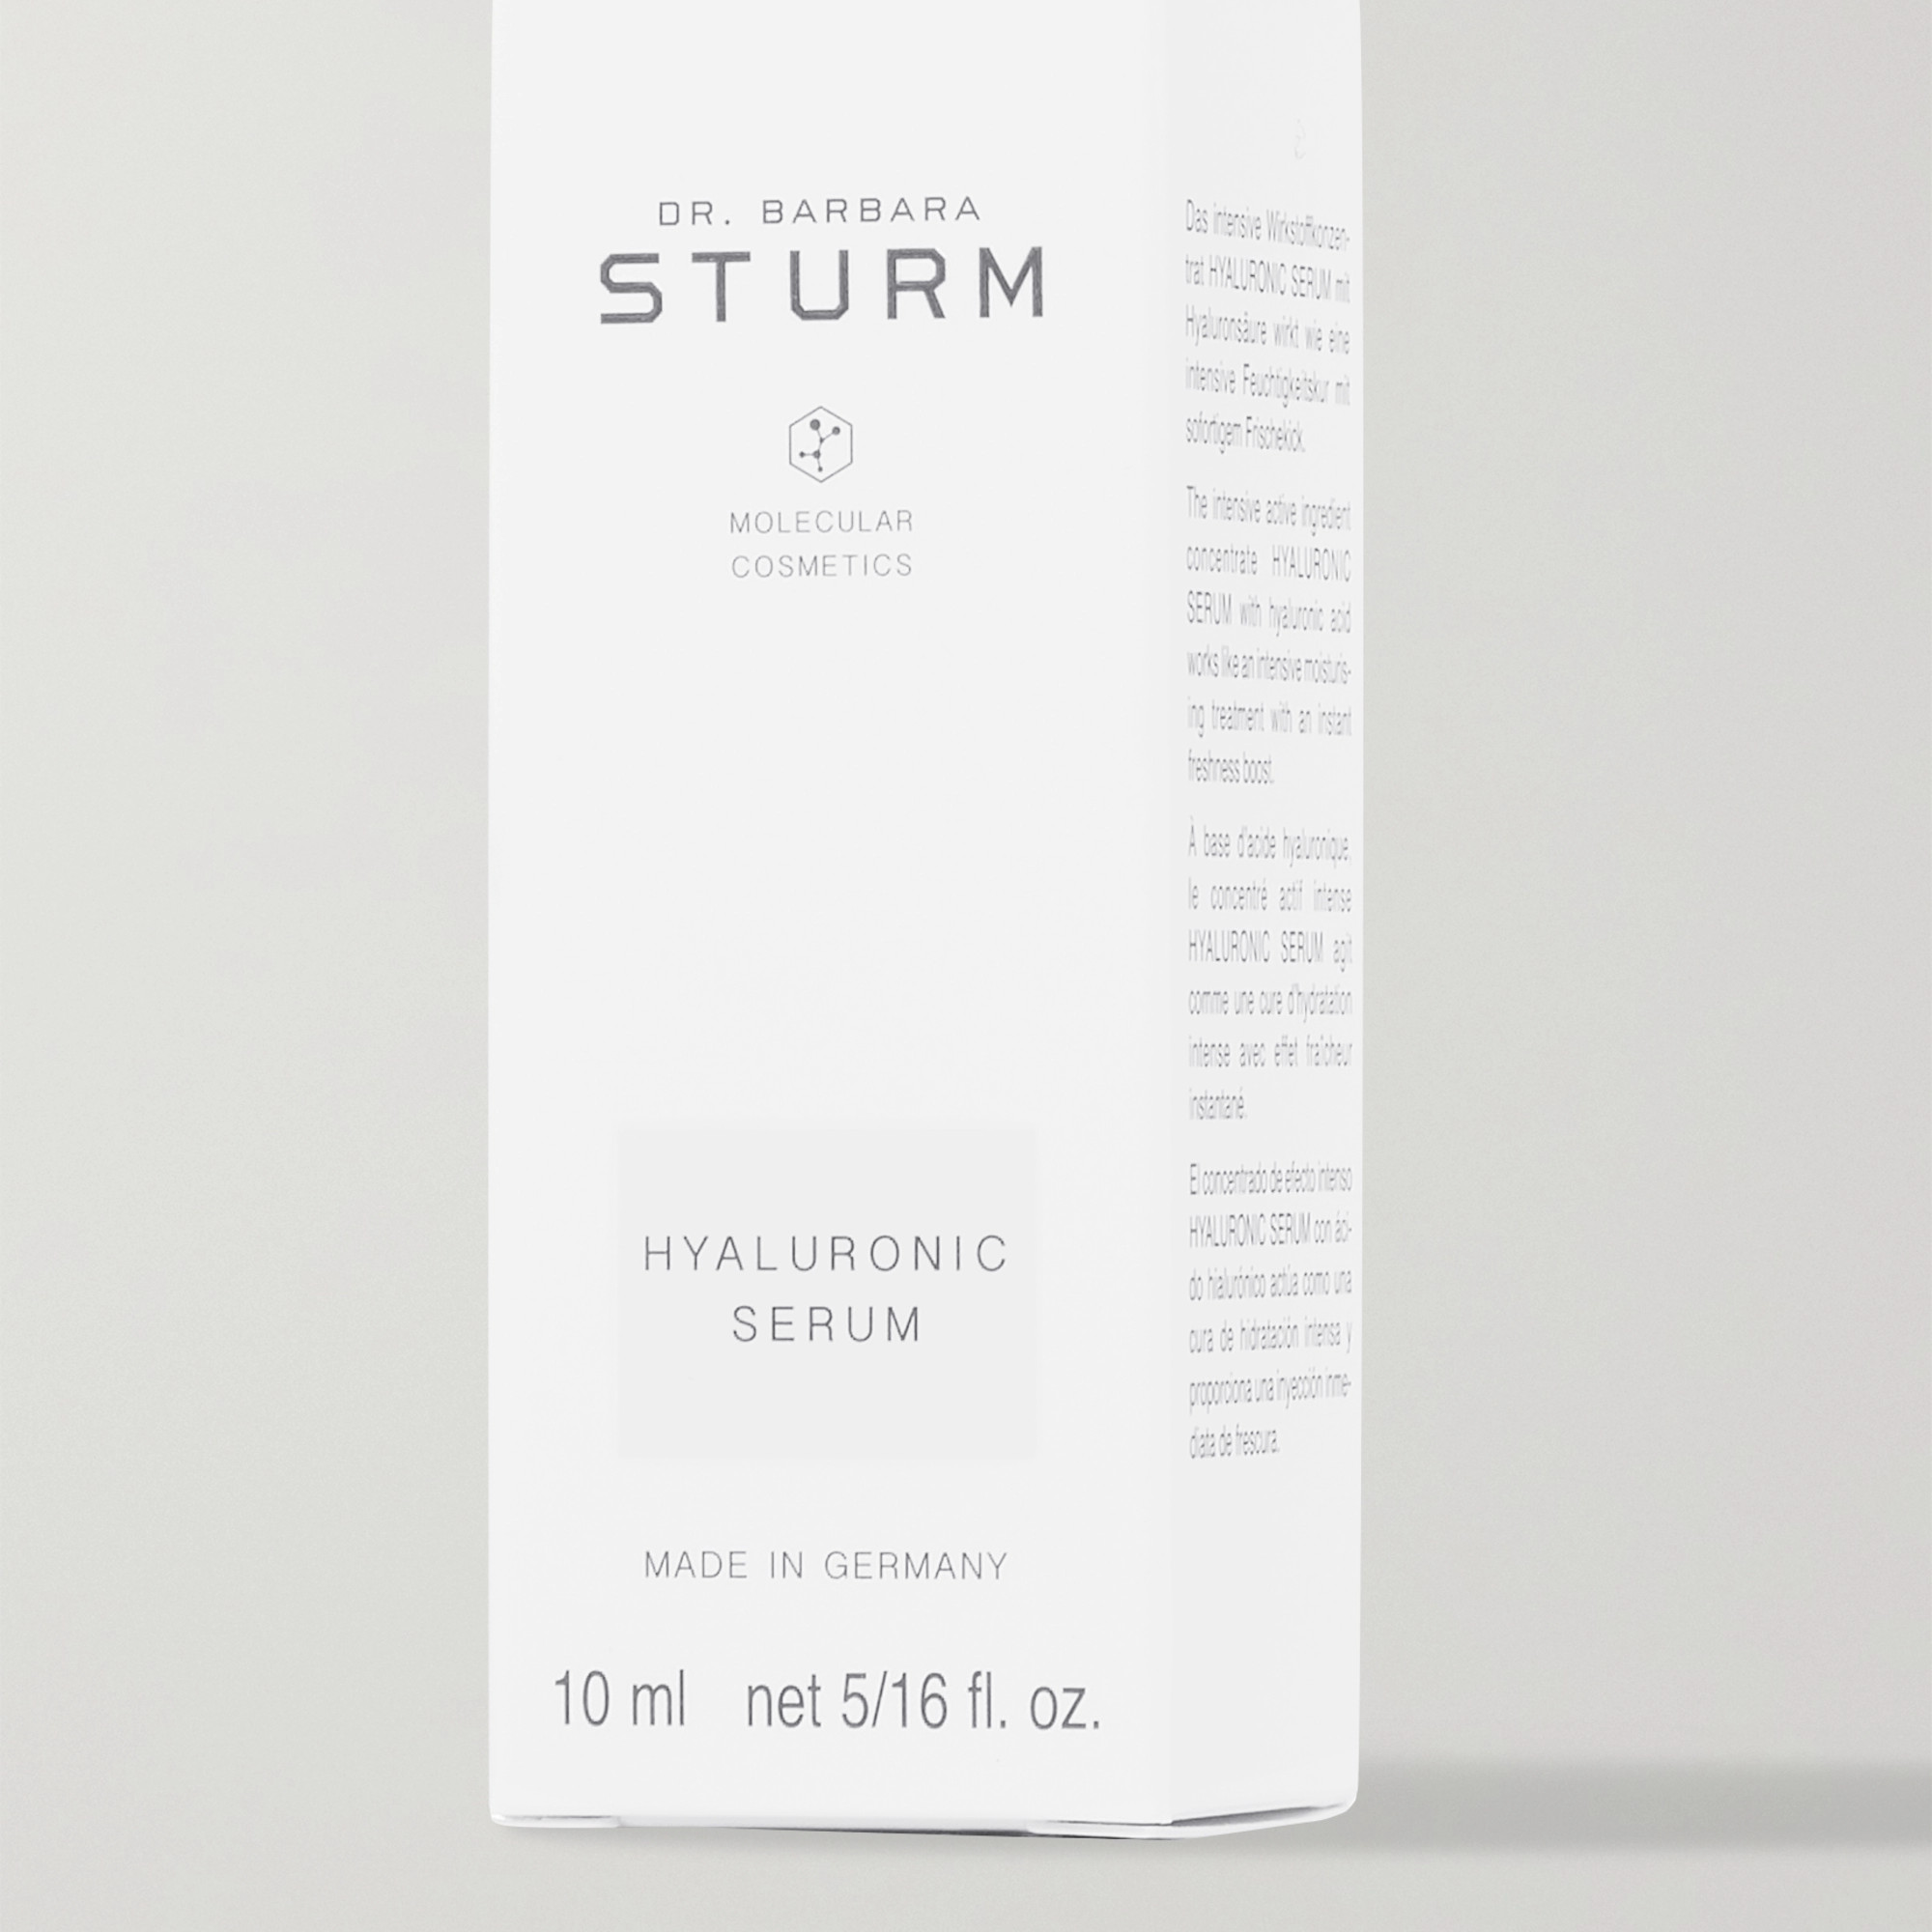 DR. BARBARA STURM Hyaluronic Serum, 10ml